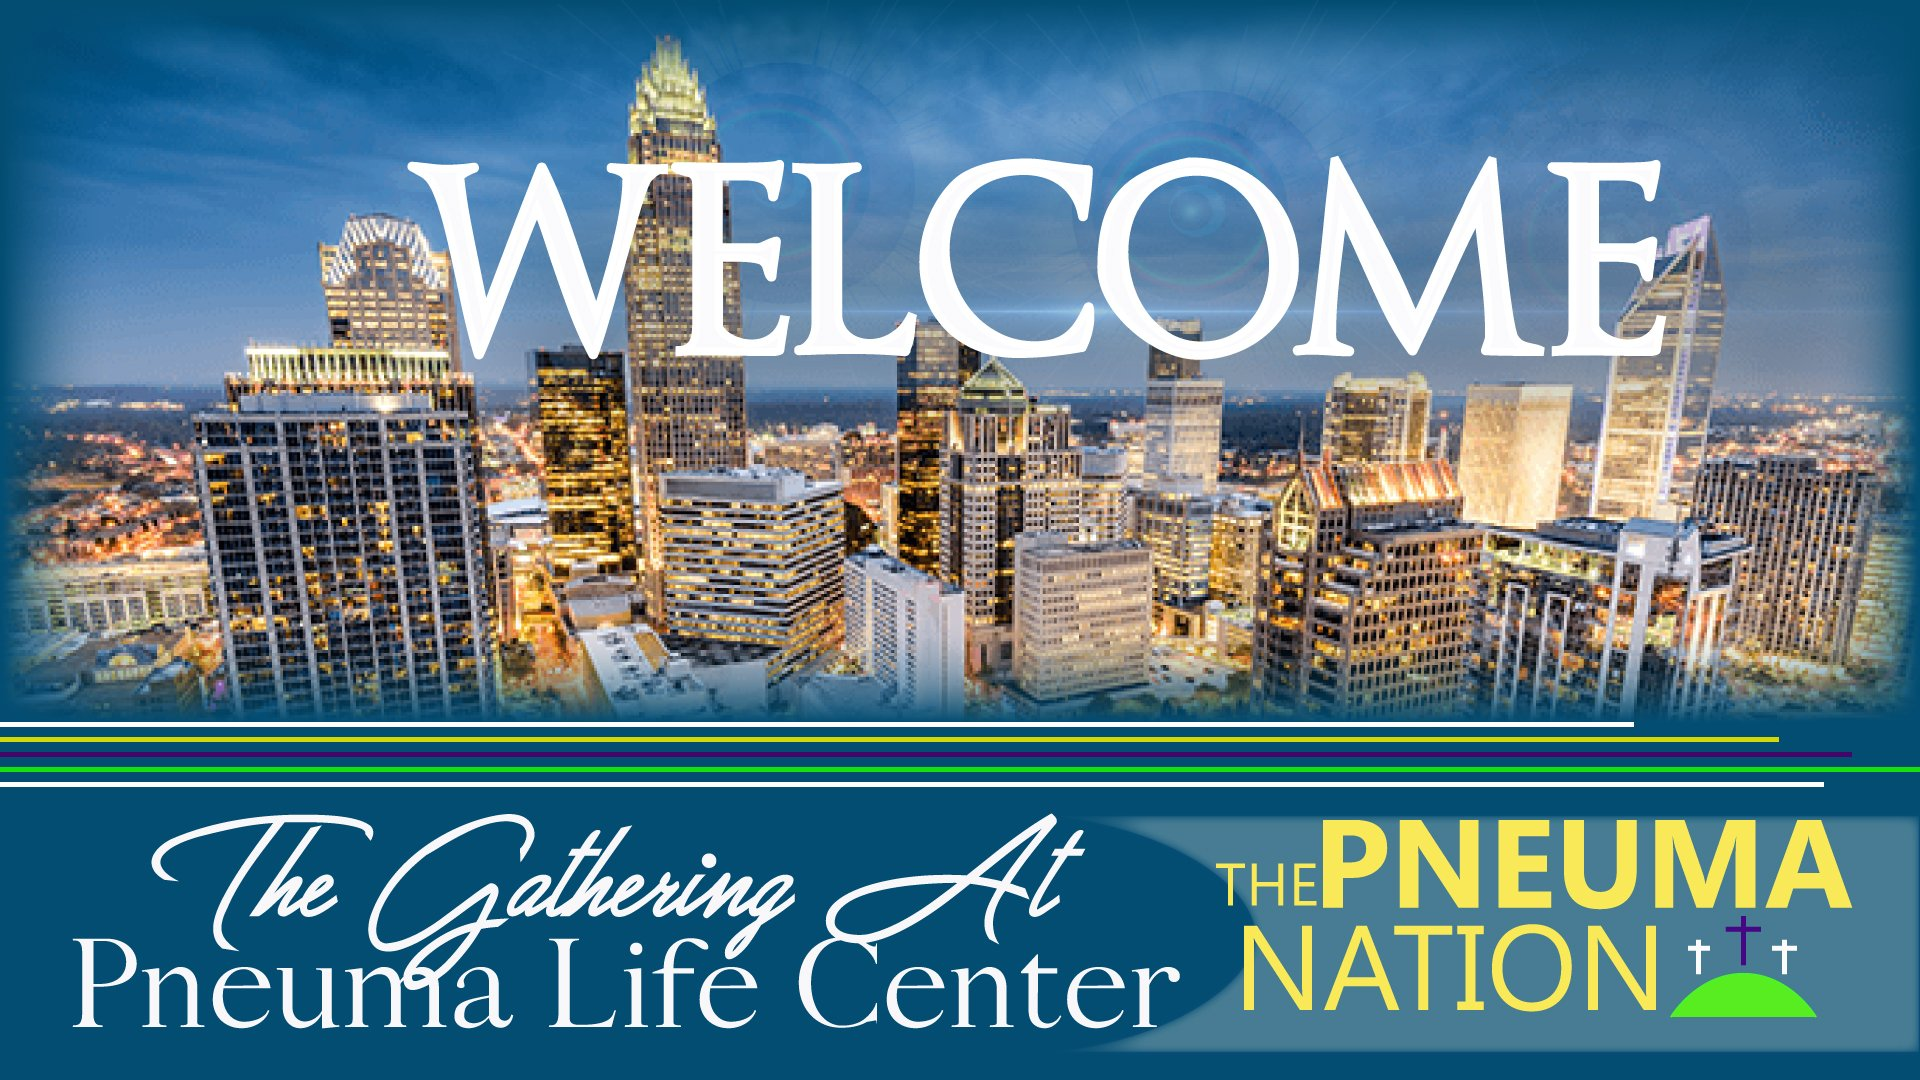 THE GATHERING AT PNEUMA LIFE CENTER